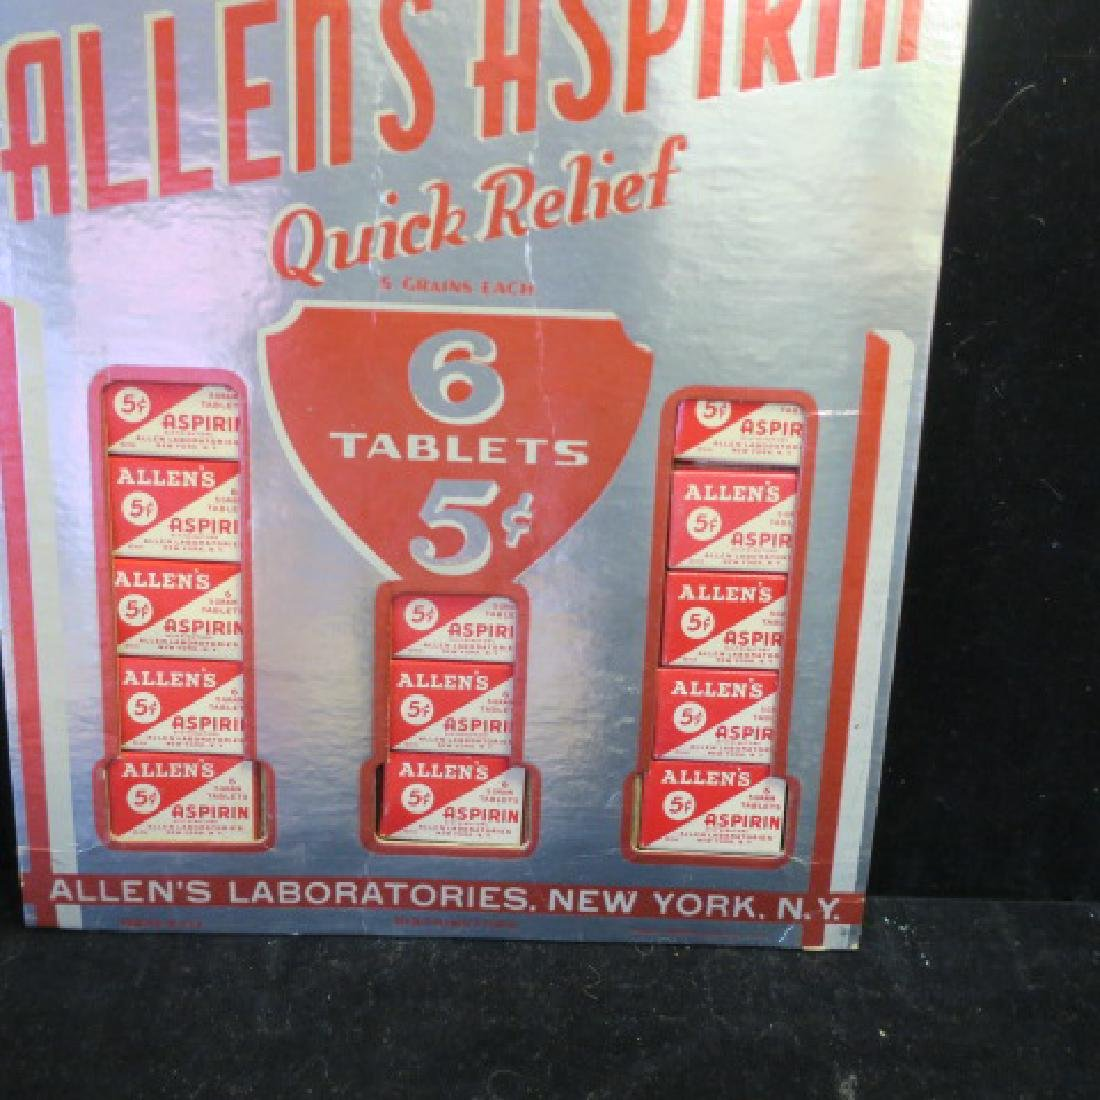 ALLEN'S ASPRIN Counter Display with Mailer Cover: - 2